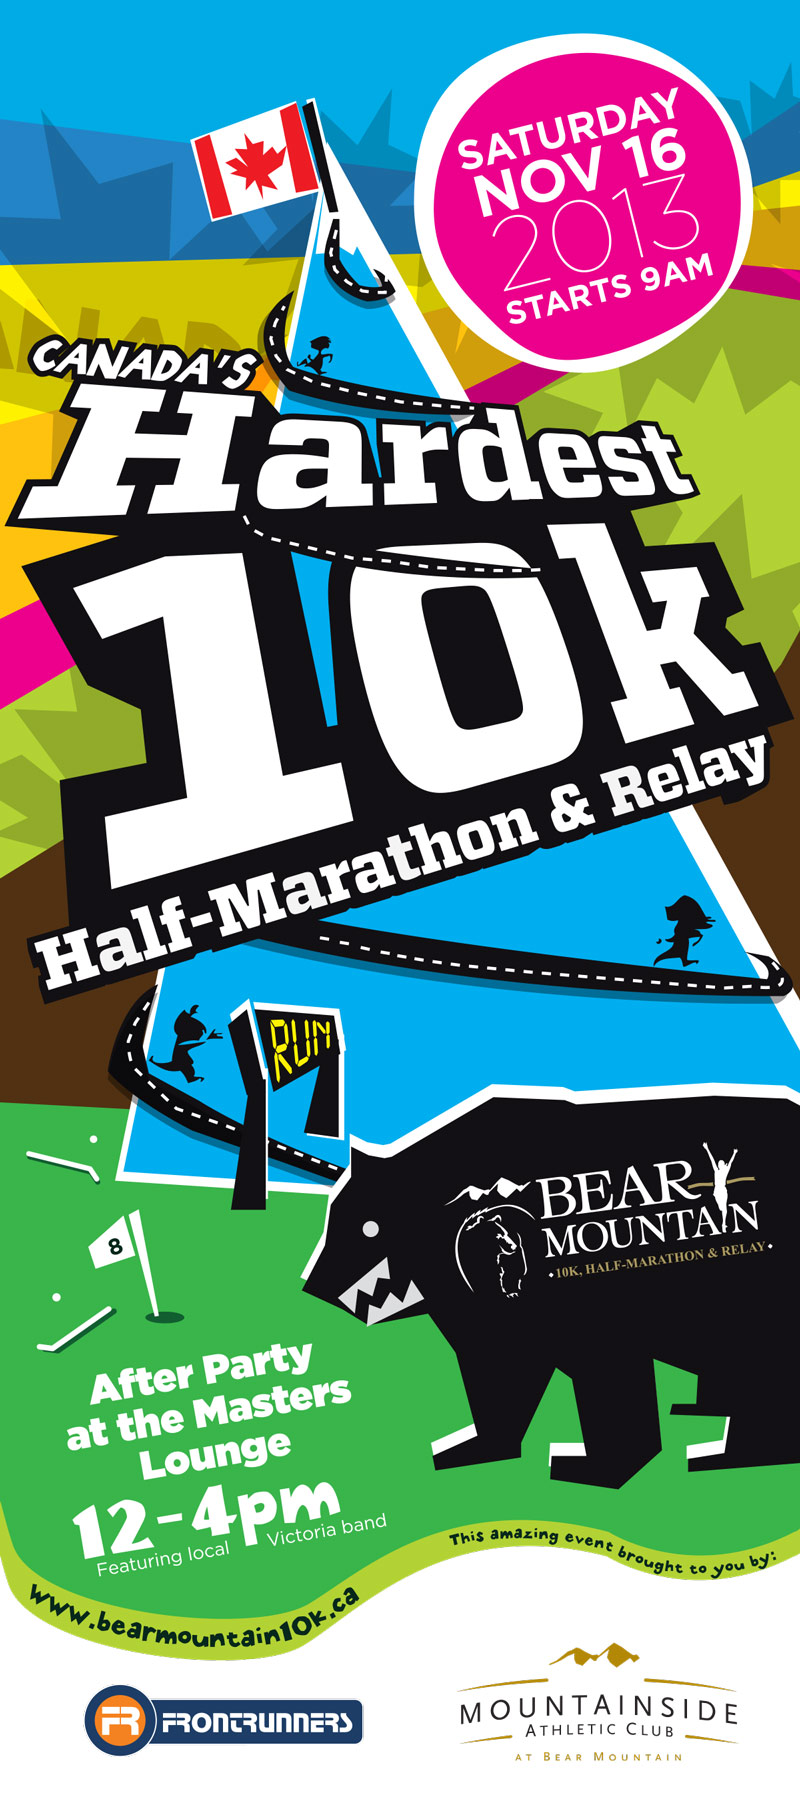 Bear Mountain 10k RACK CARD design